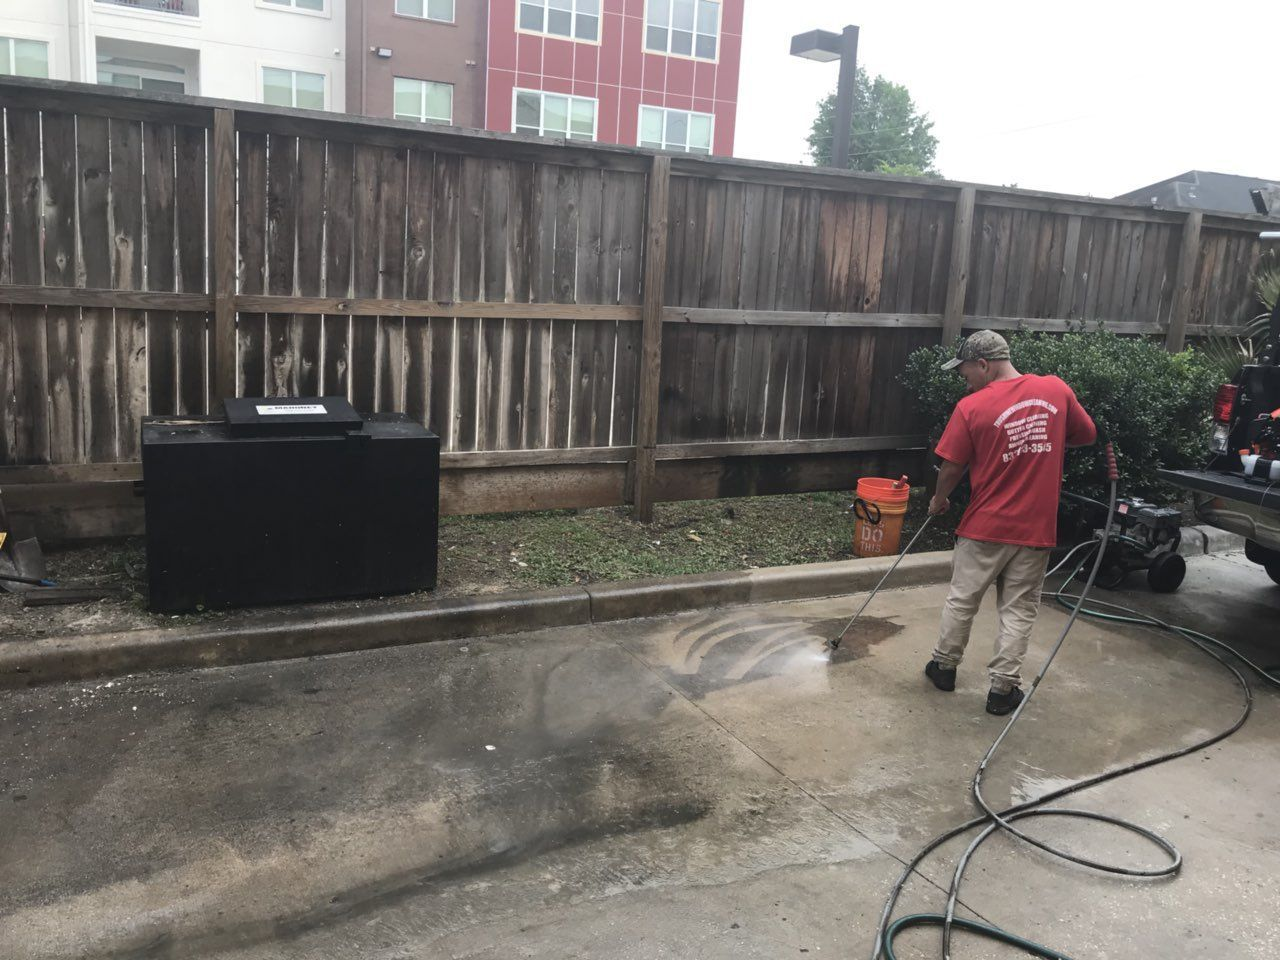 If you want timely, reliable service from a PowerWashing